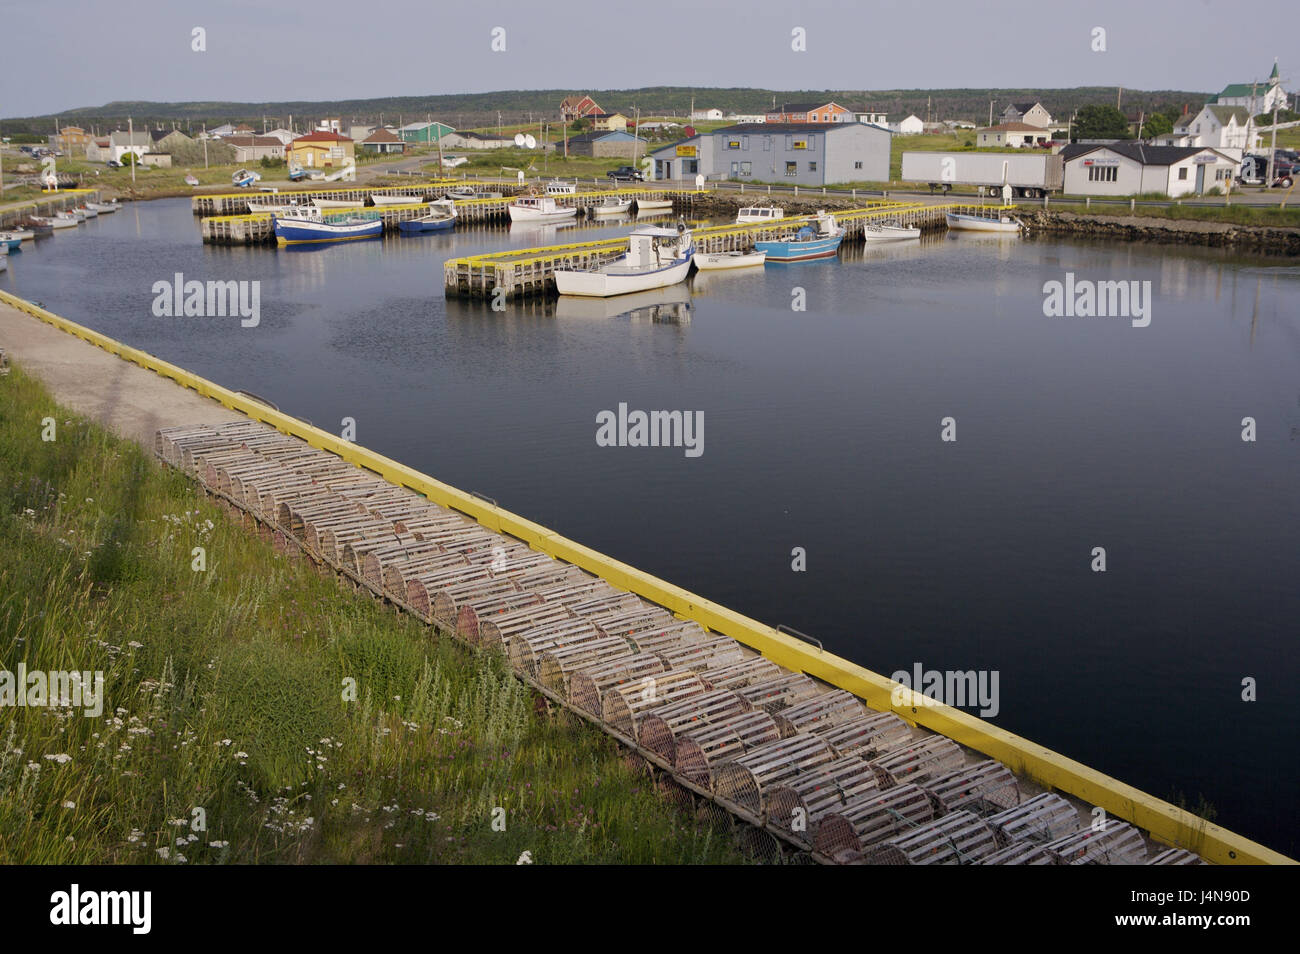 Canada, Newfoundland, Bonavista, harbour view, boats, lobster traps, - Stock Image